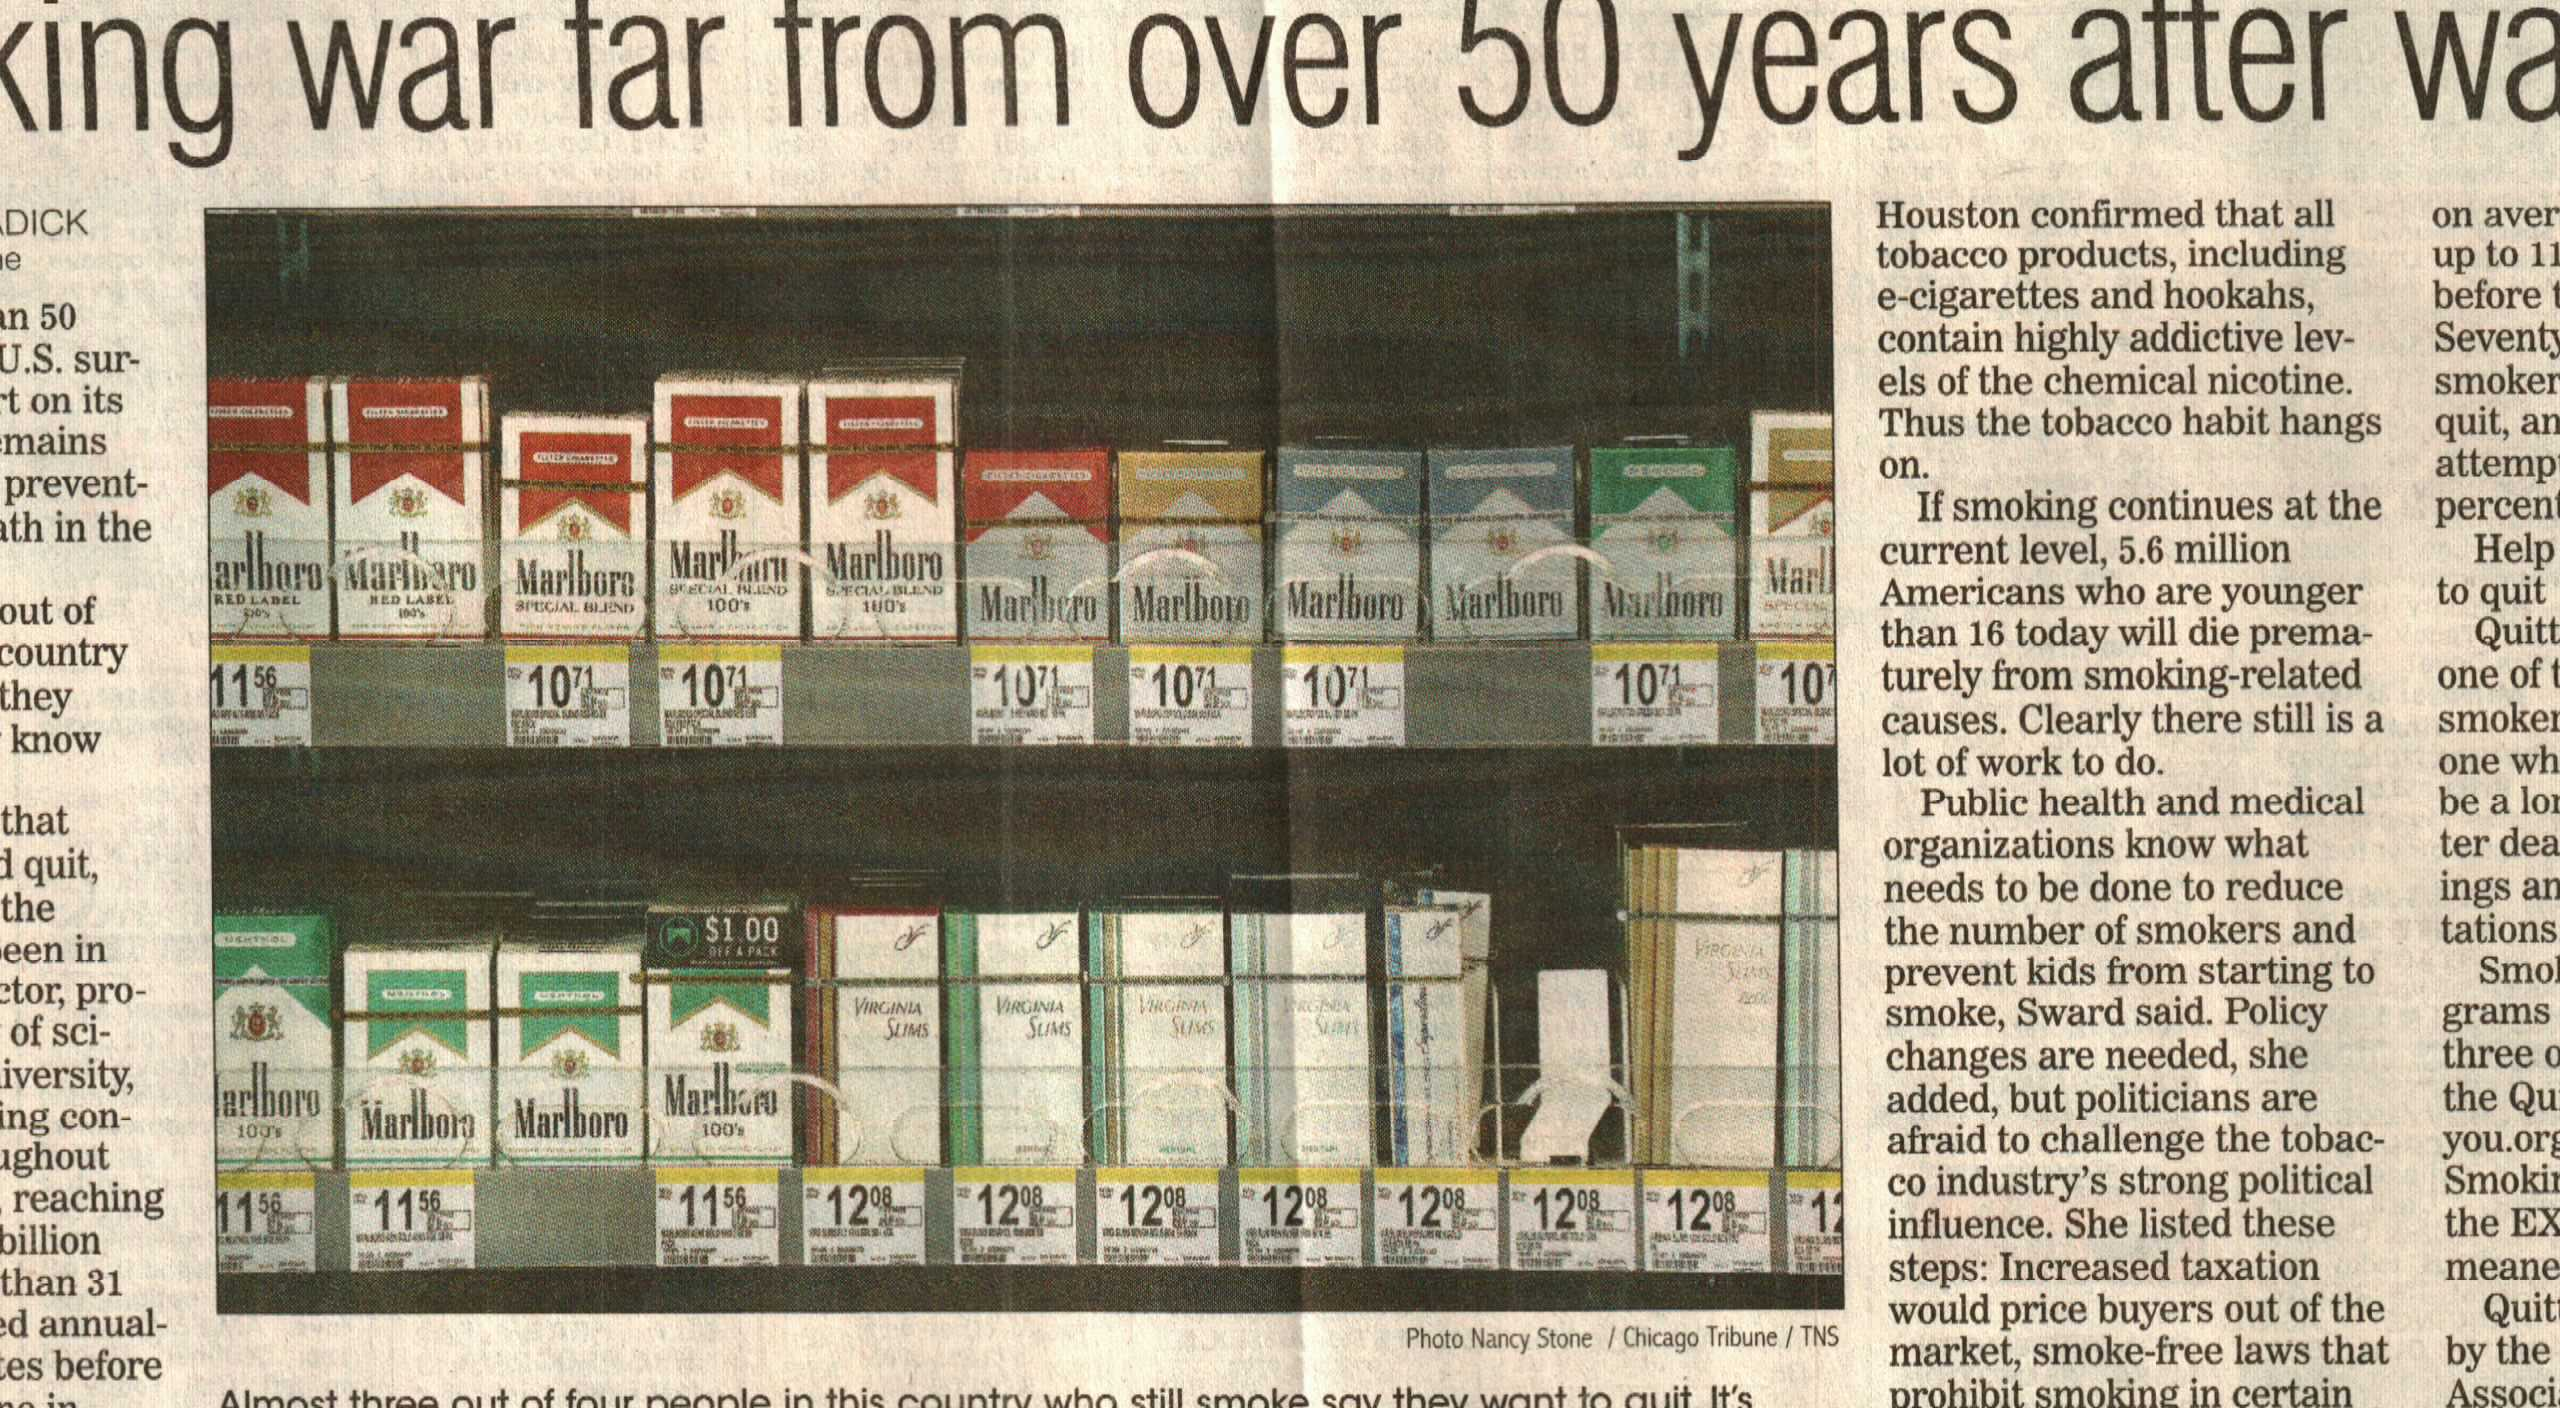 Battle against big tobacco image of cigarette high costs